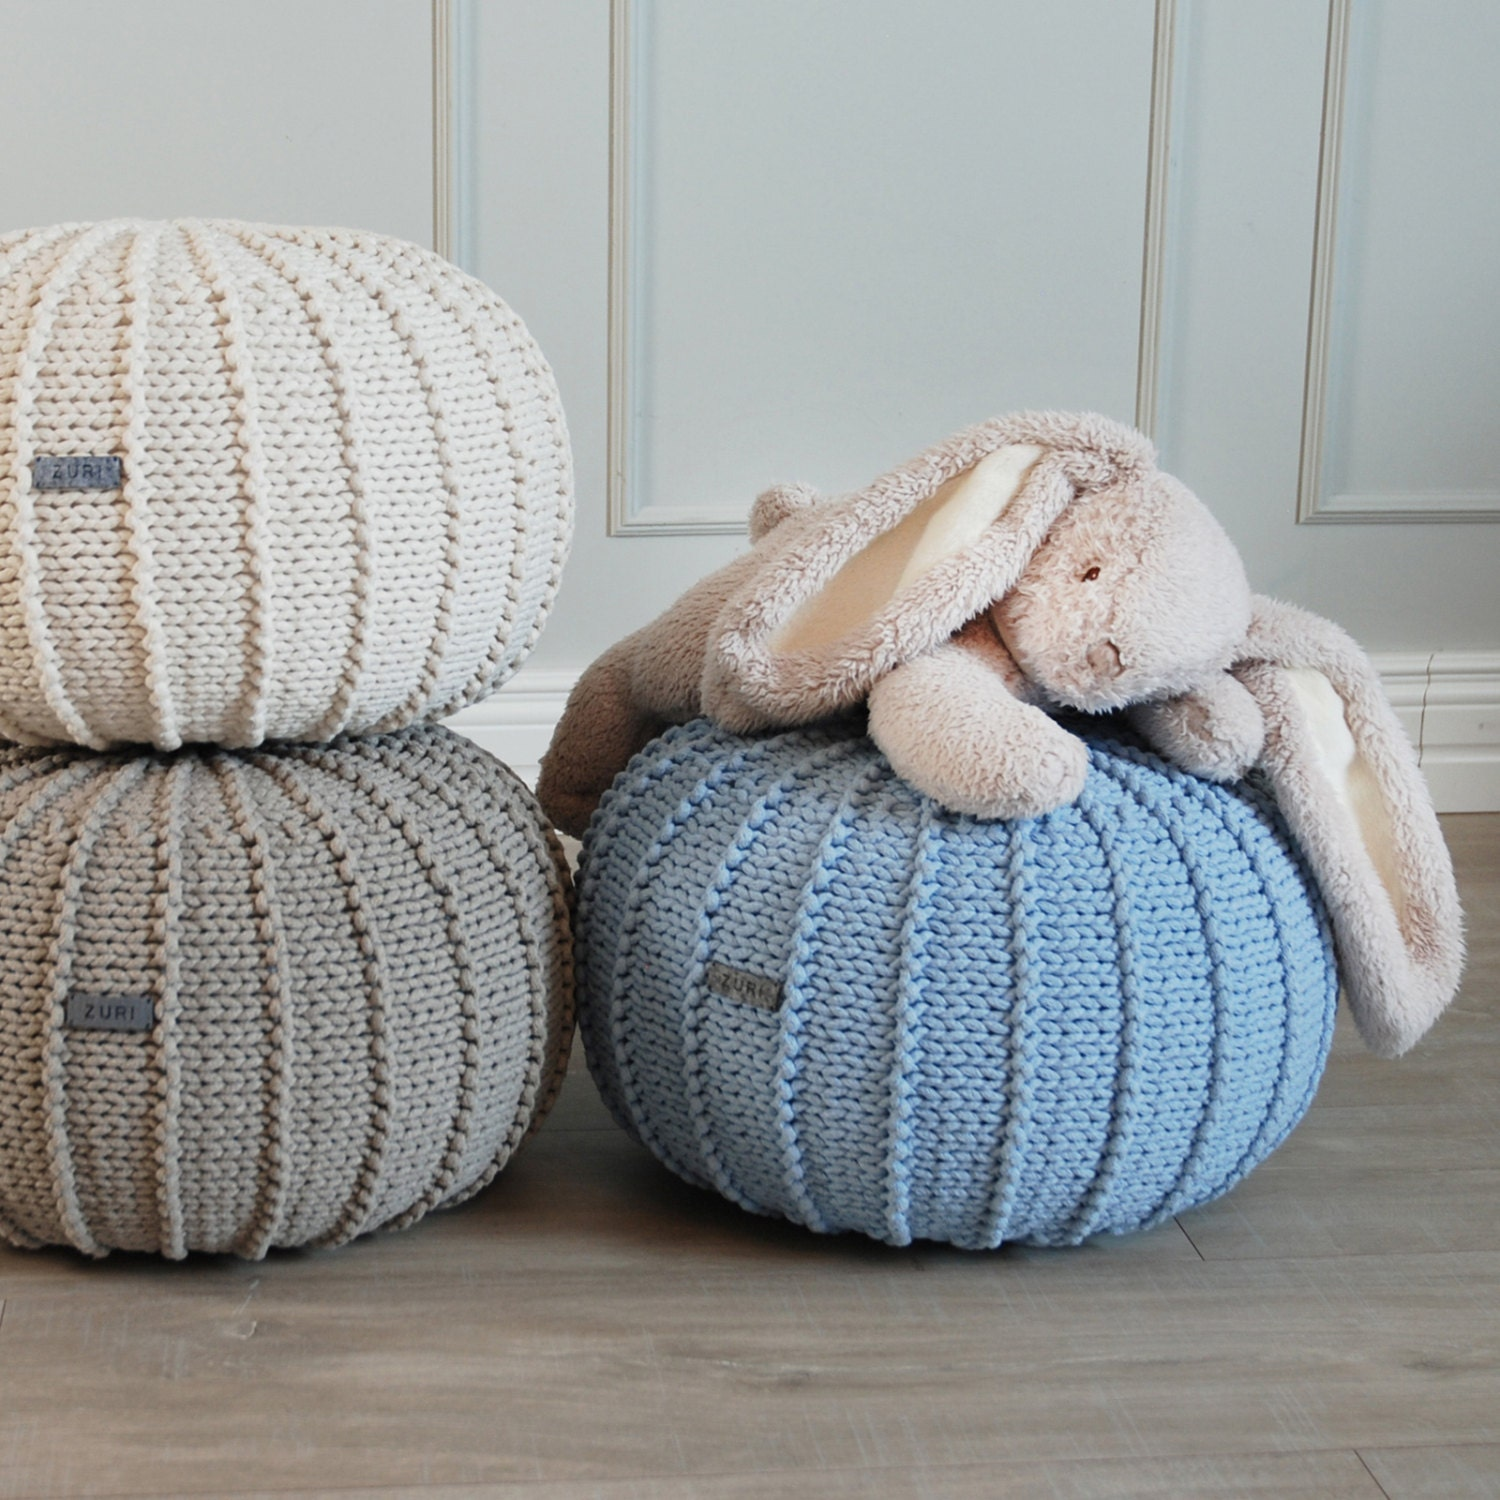 Good Baby Blue Knitted Cotton Floor Pouffe, Blue Pouf, Ottoman, Knitted Pouf,  Pouffe